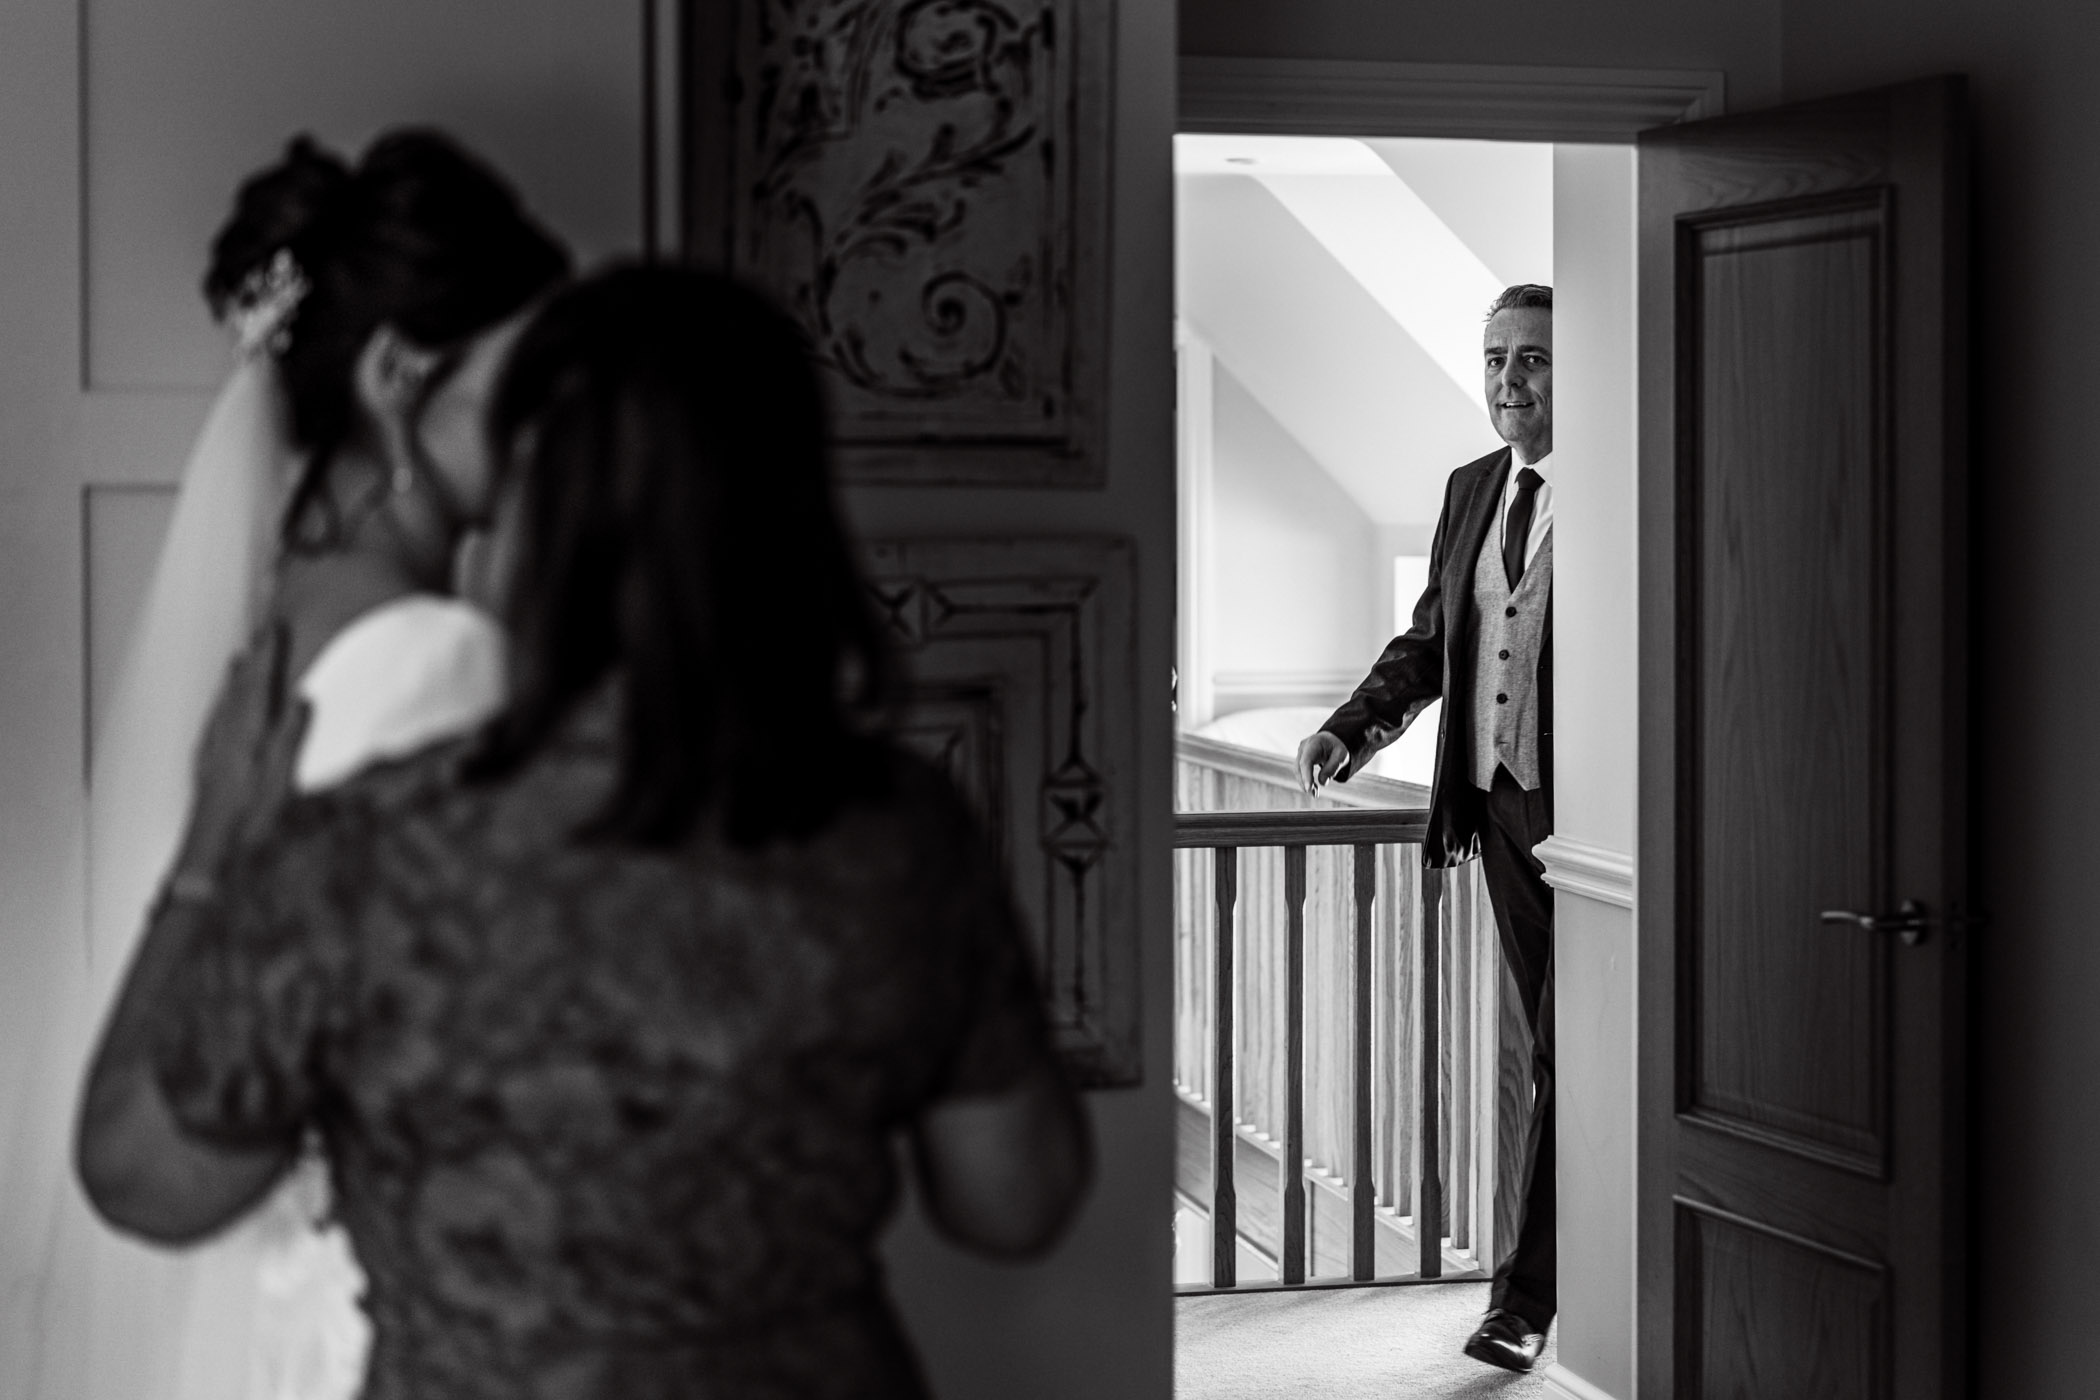 I'm starting with probably my favourite frame from their day. Early on Becky had just finished preparations and her father is ready to see her for the first time in her dress. I really like how her mother is lending a comforting hand. Love the sense of anticipation… The next frame is seconds after